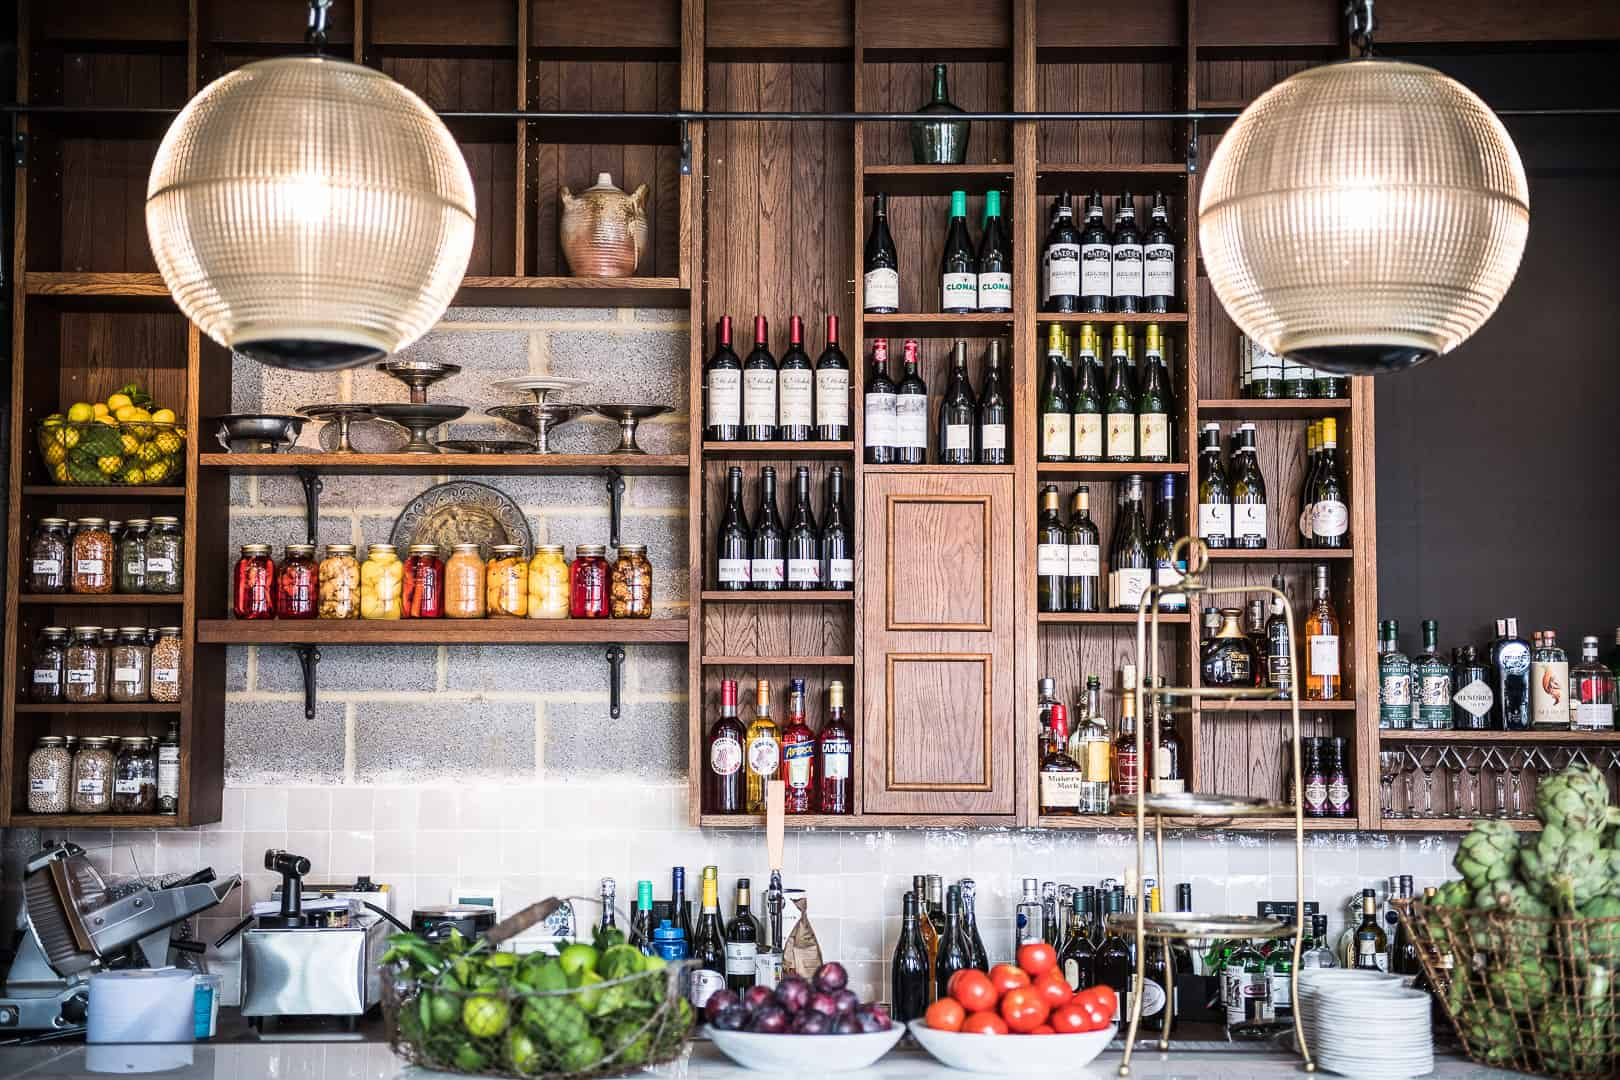 The Laundry_bar new restaurant openings| Photo: Jack Lewis Williams